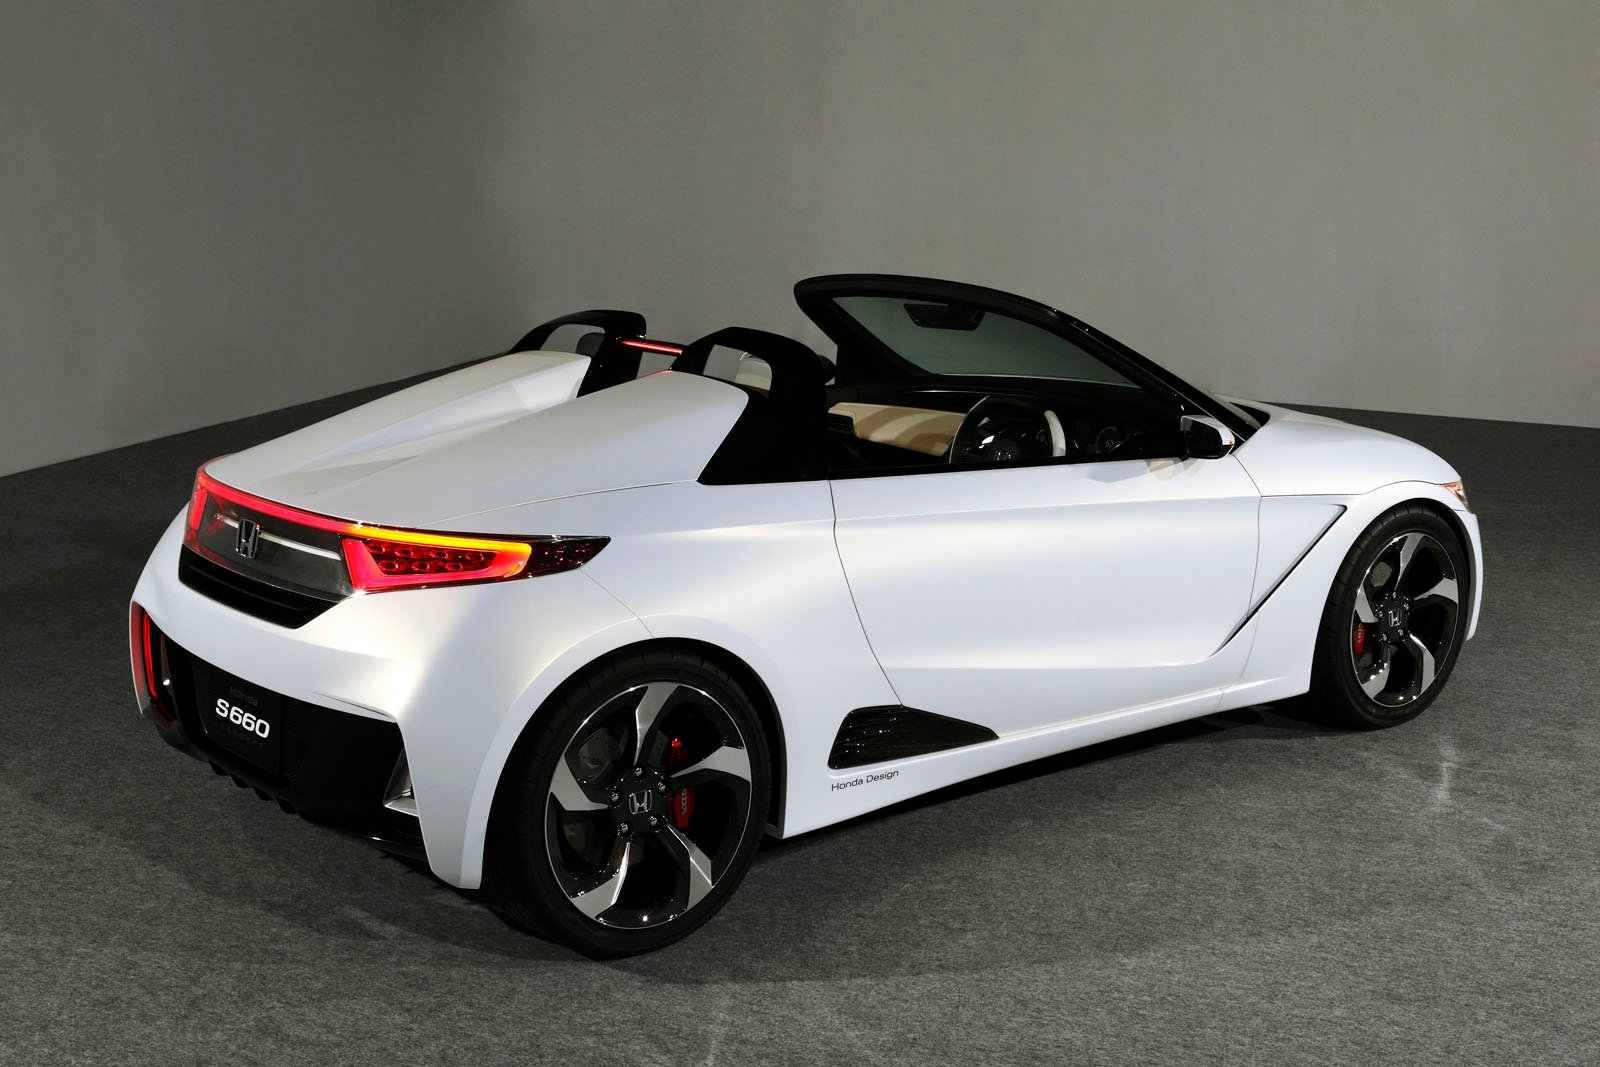 Honda S660 Archives - The Truth About Cars